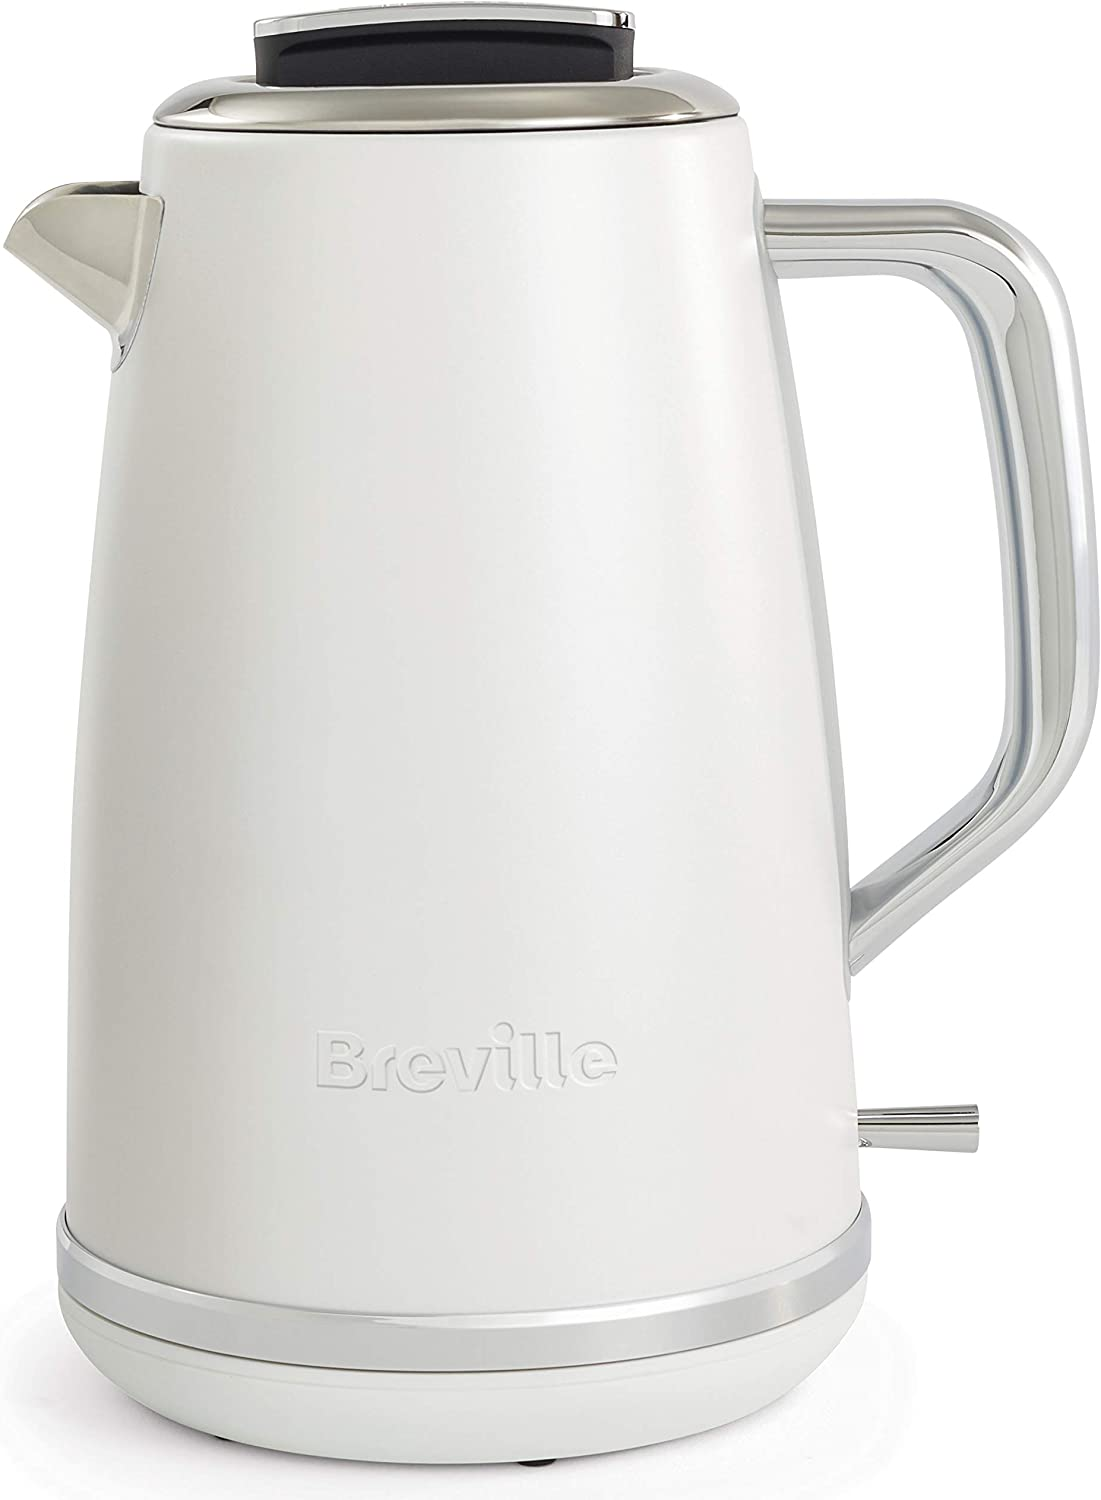 Breville Lustra Electric Kettle, 1.7